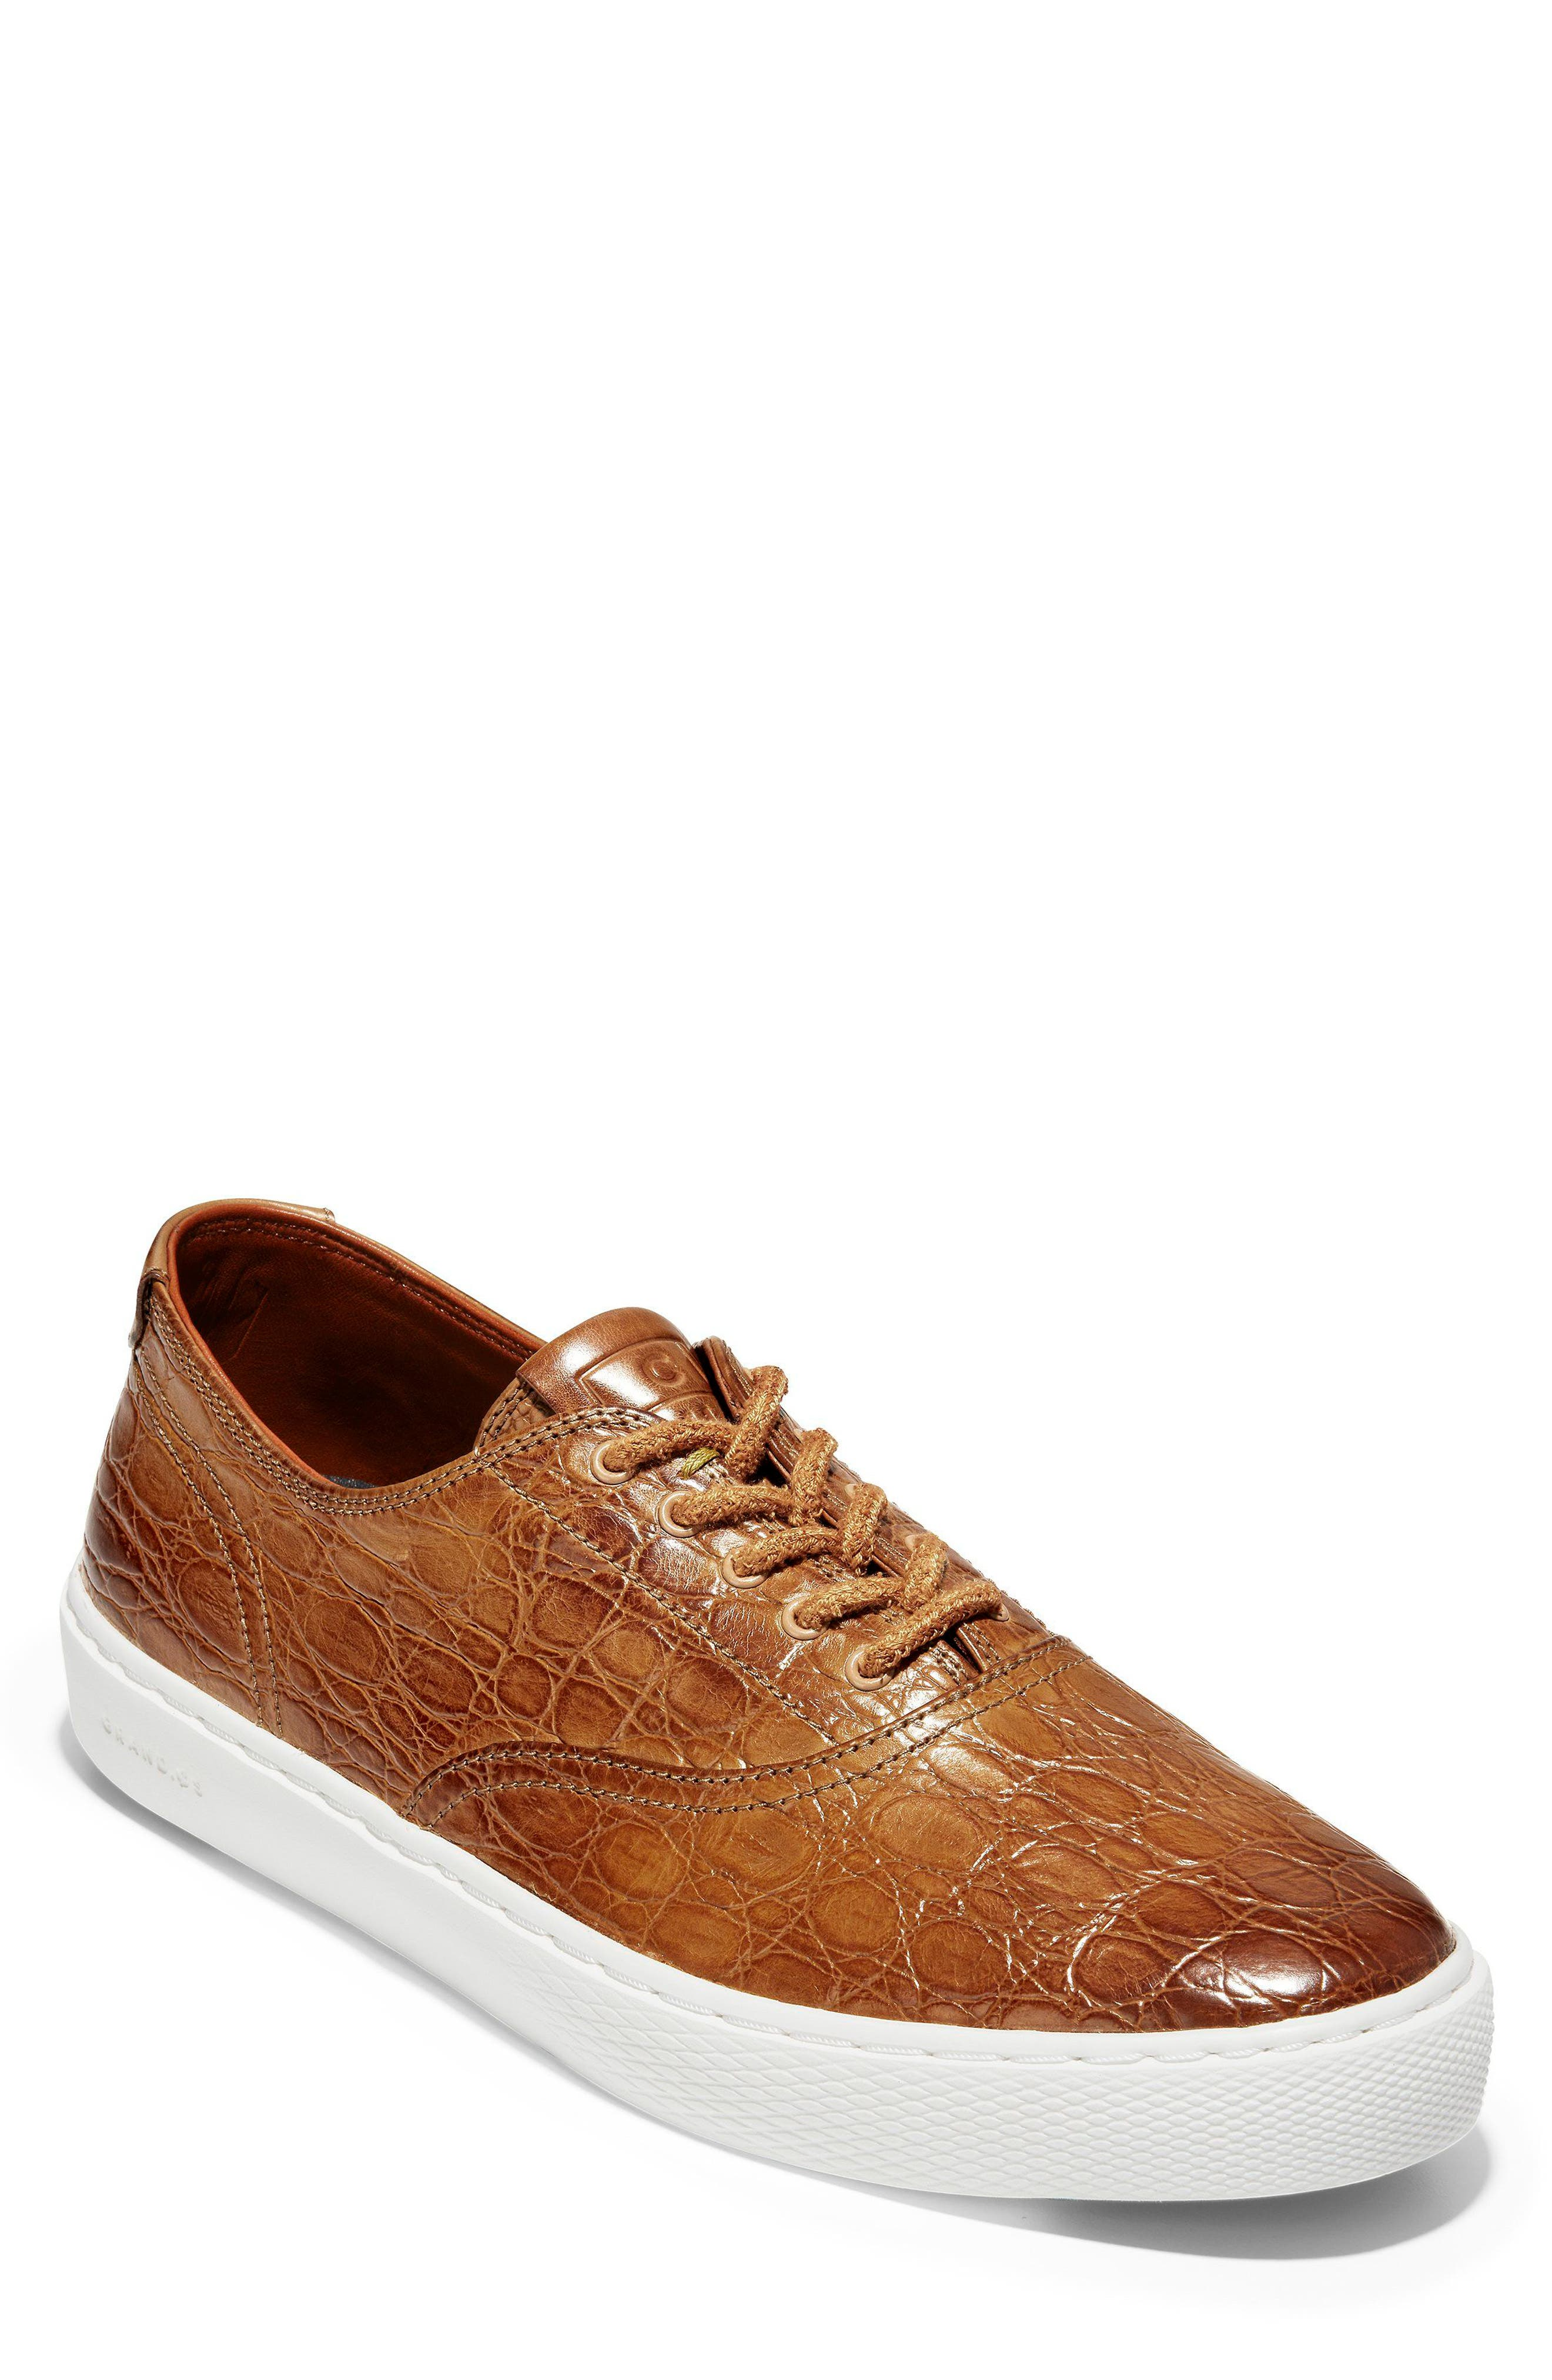 GrandPro Deck Low Top Sneaker,                         Main,                         color, Brown/ White Leather